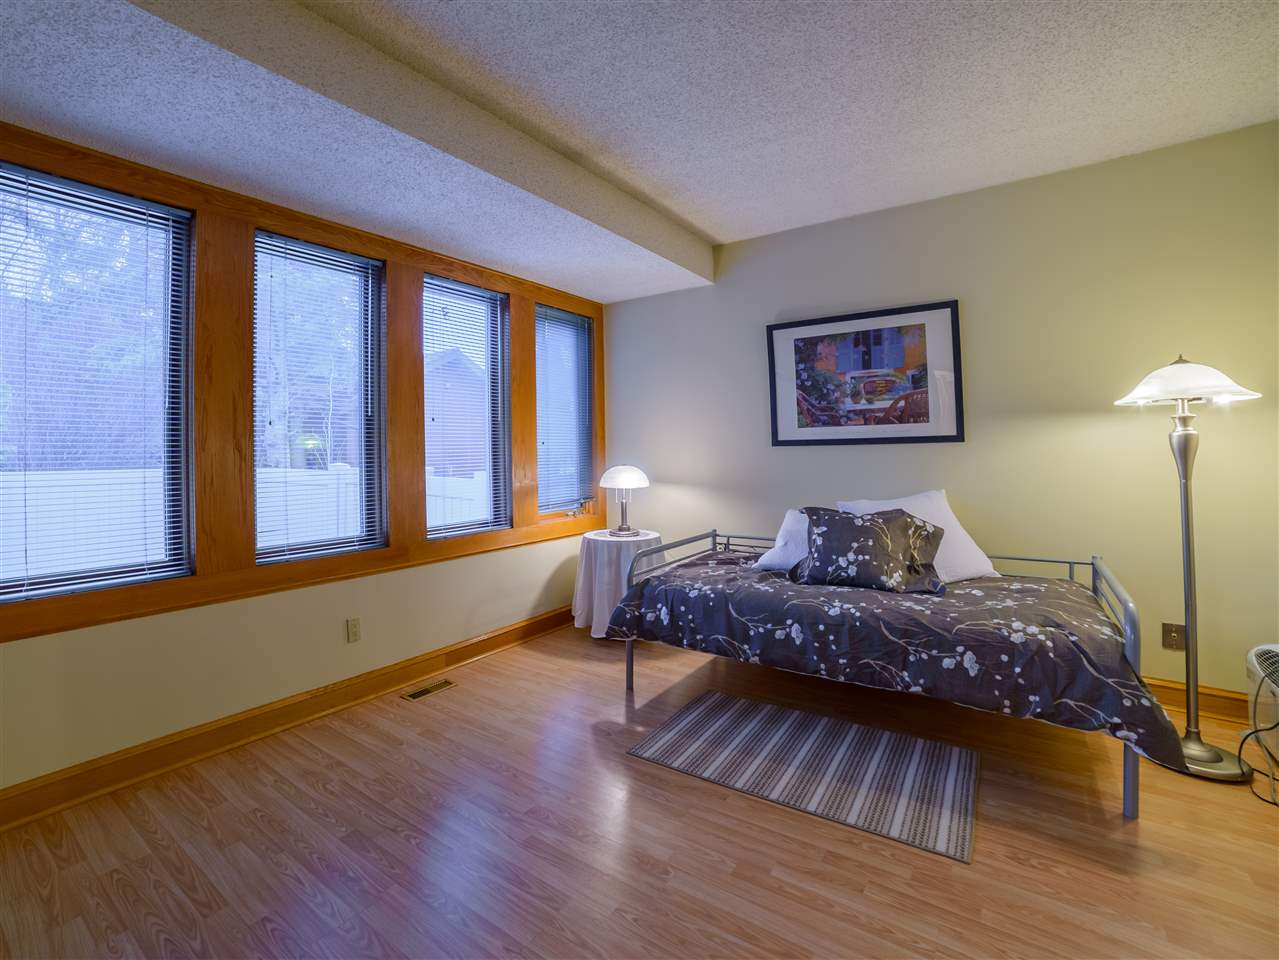 Photo 23: 2831 126 Street NW in Edmonton: Zone 16 House for sale : MLS® # E4061665